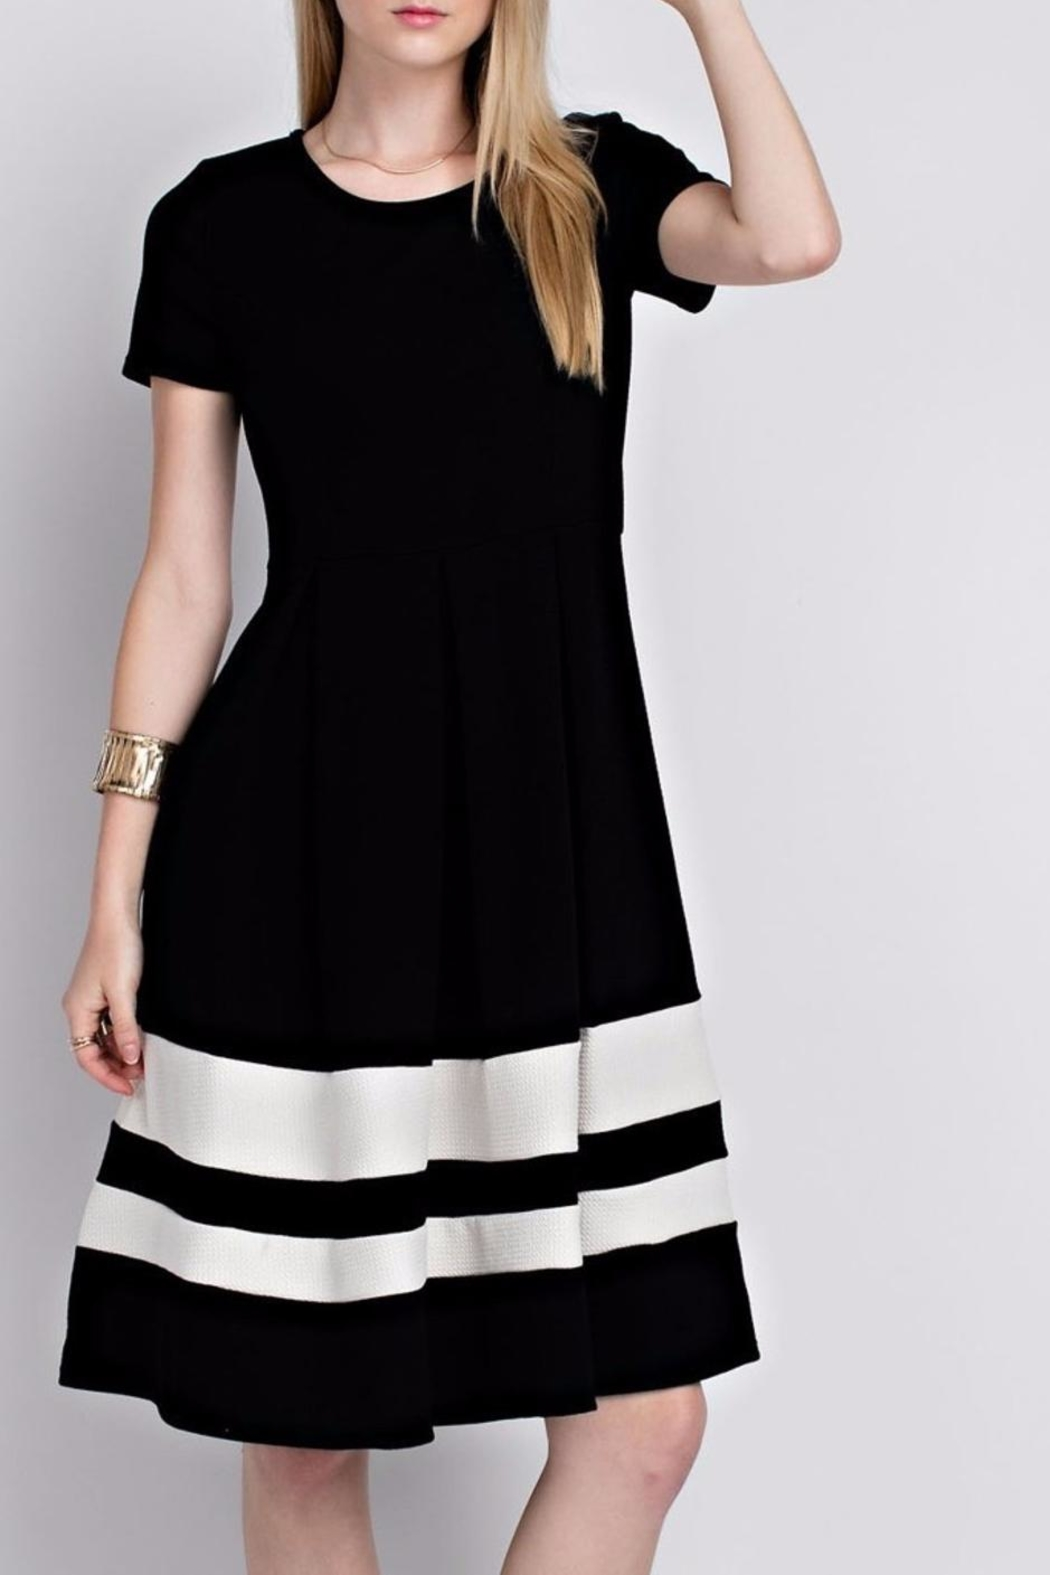 12pm by Mon Ami Black Eloise Dress - Main Image